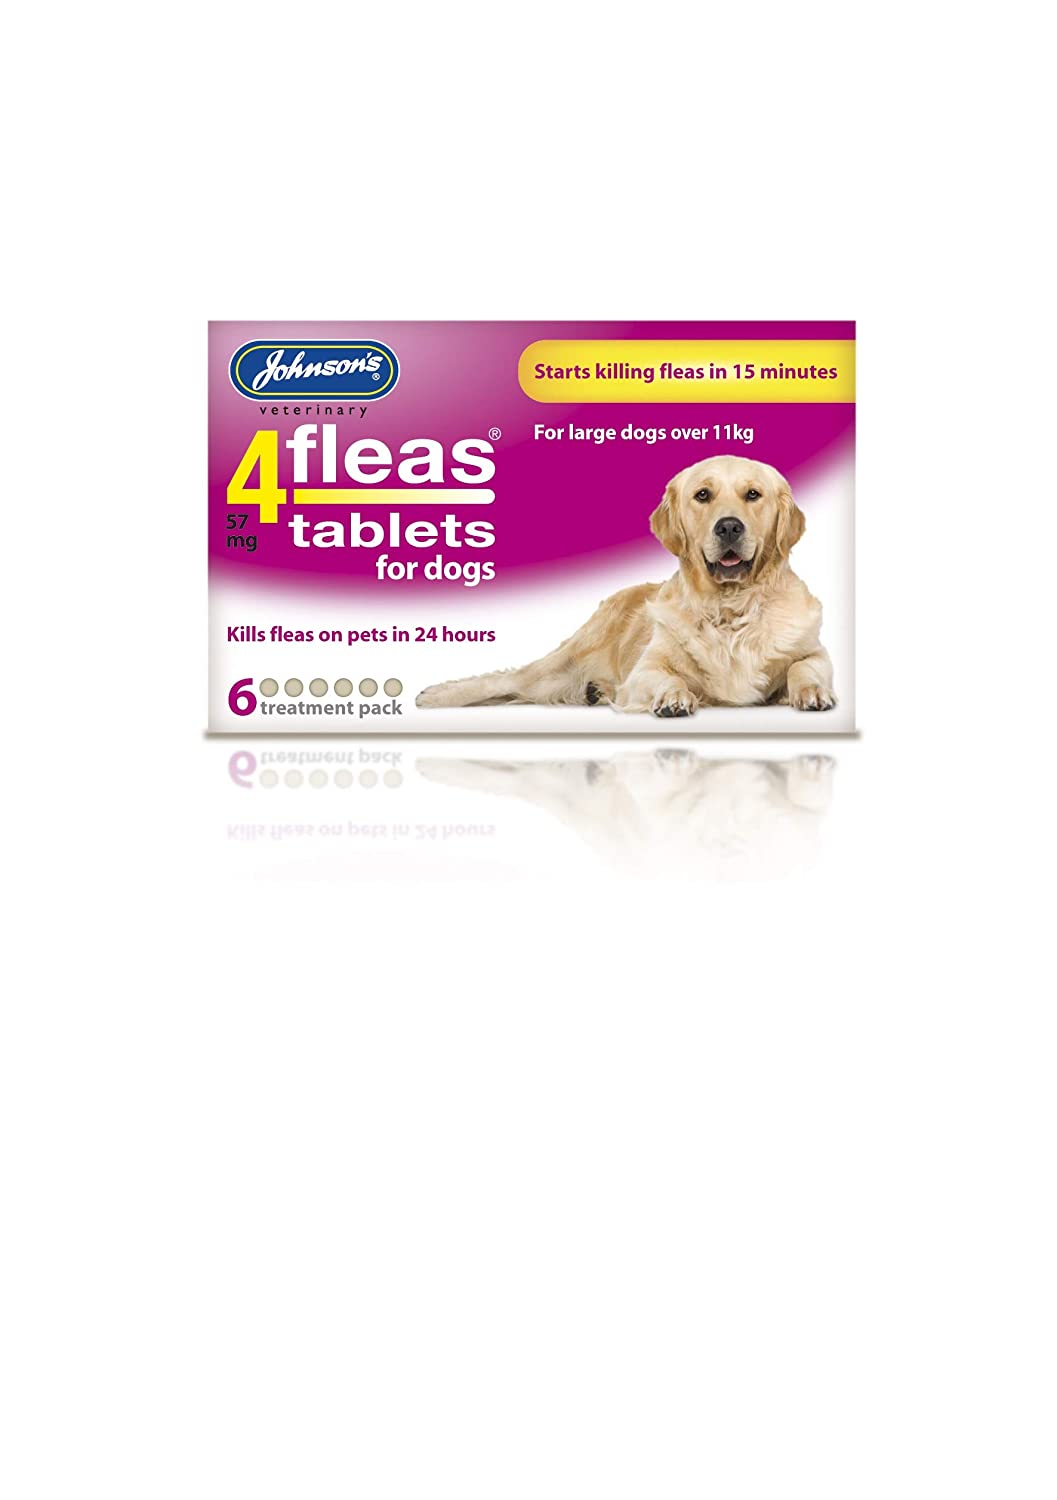 Johnsons Vet 4fleas Tablets for Puppies & Small Dogs 3 Treatment Pack - D091: Amazon.es: Productos para mascotas